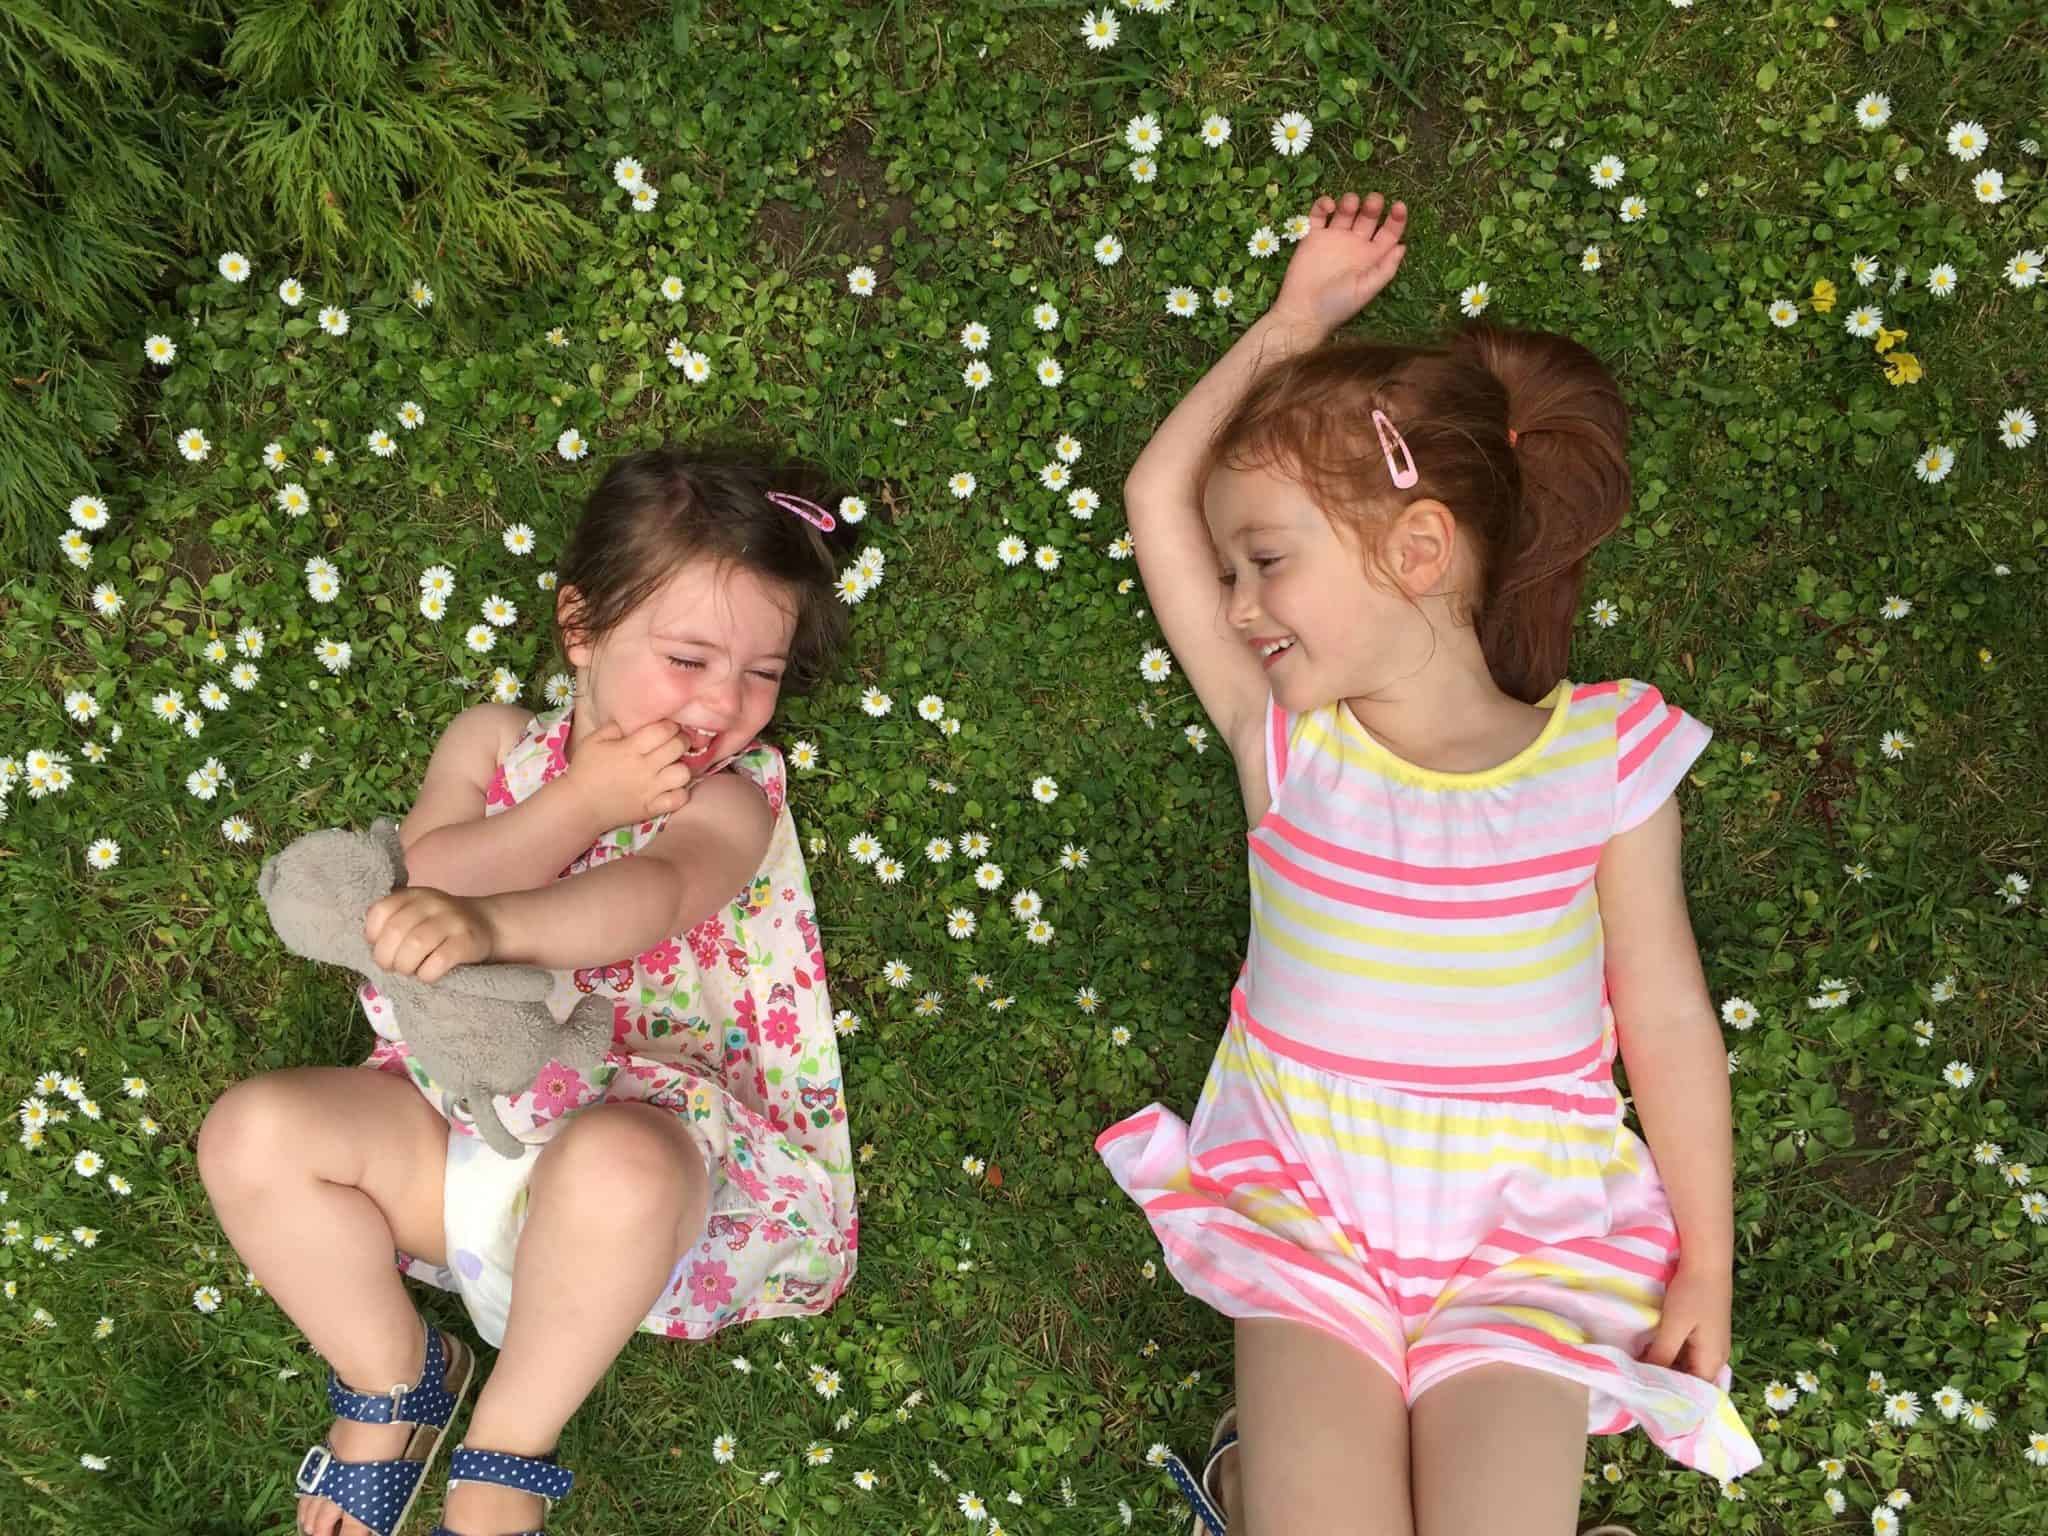 Thea and Ava laughing amongst the daisies